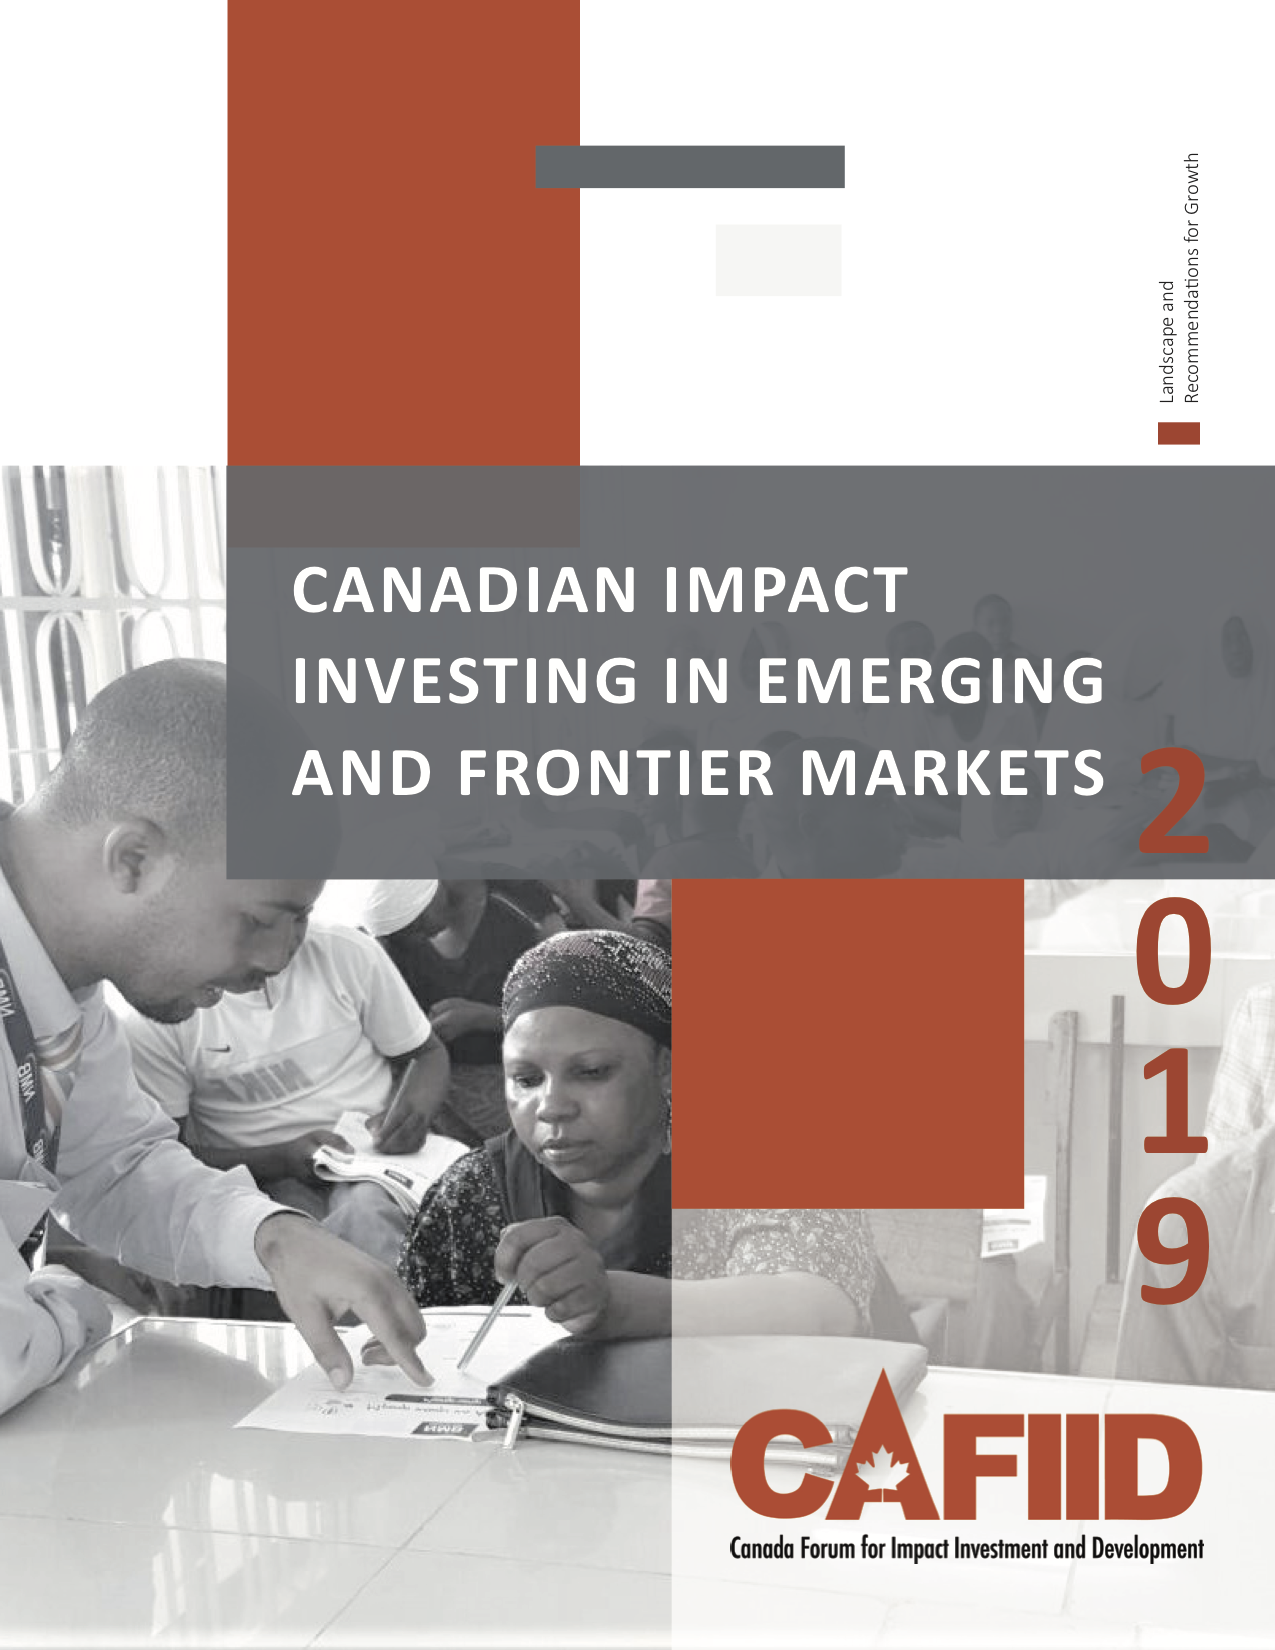 Canadian Impact Investing in Emerging and Frontier Markets